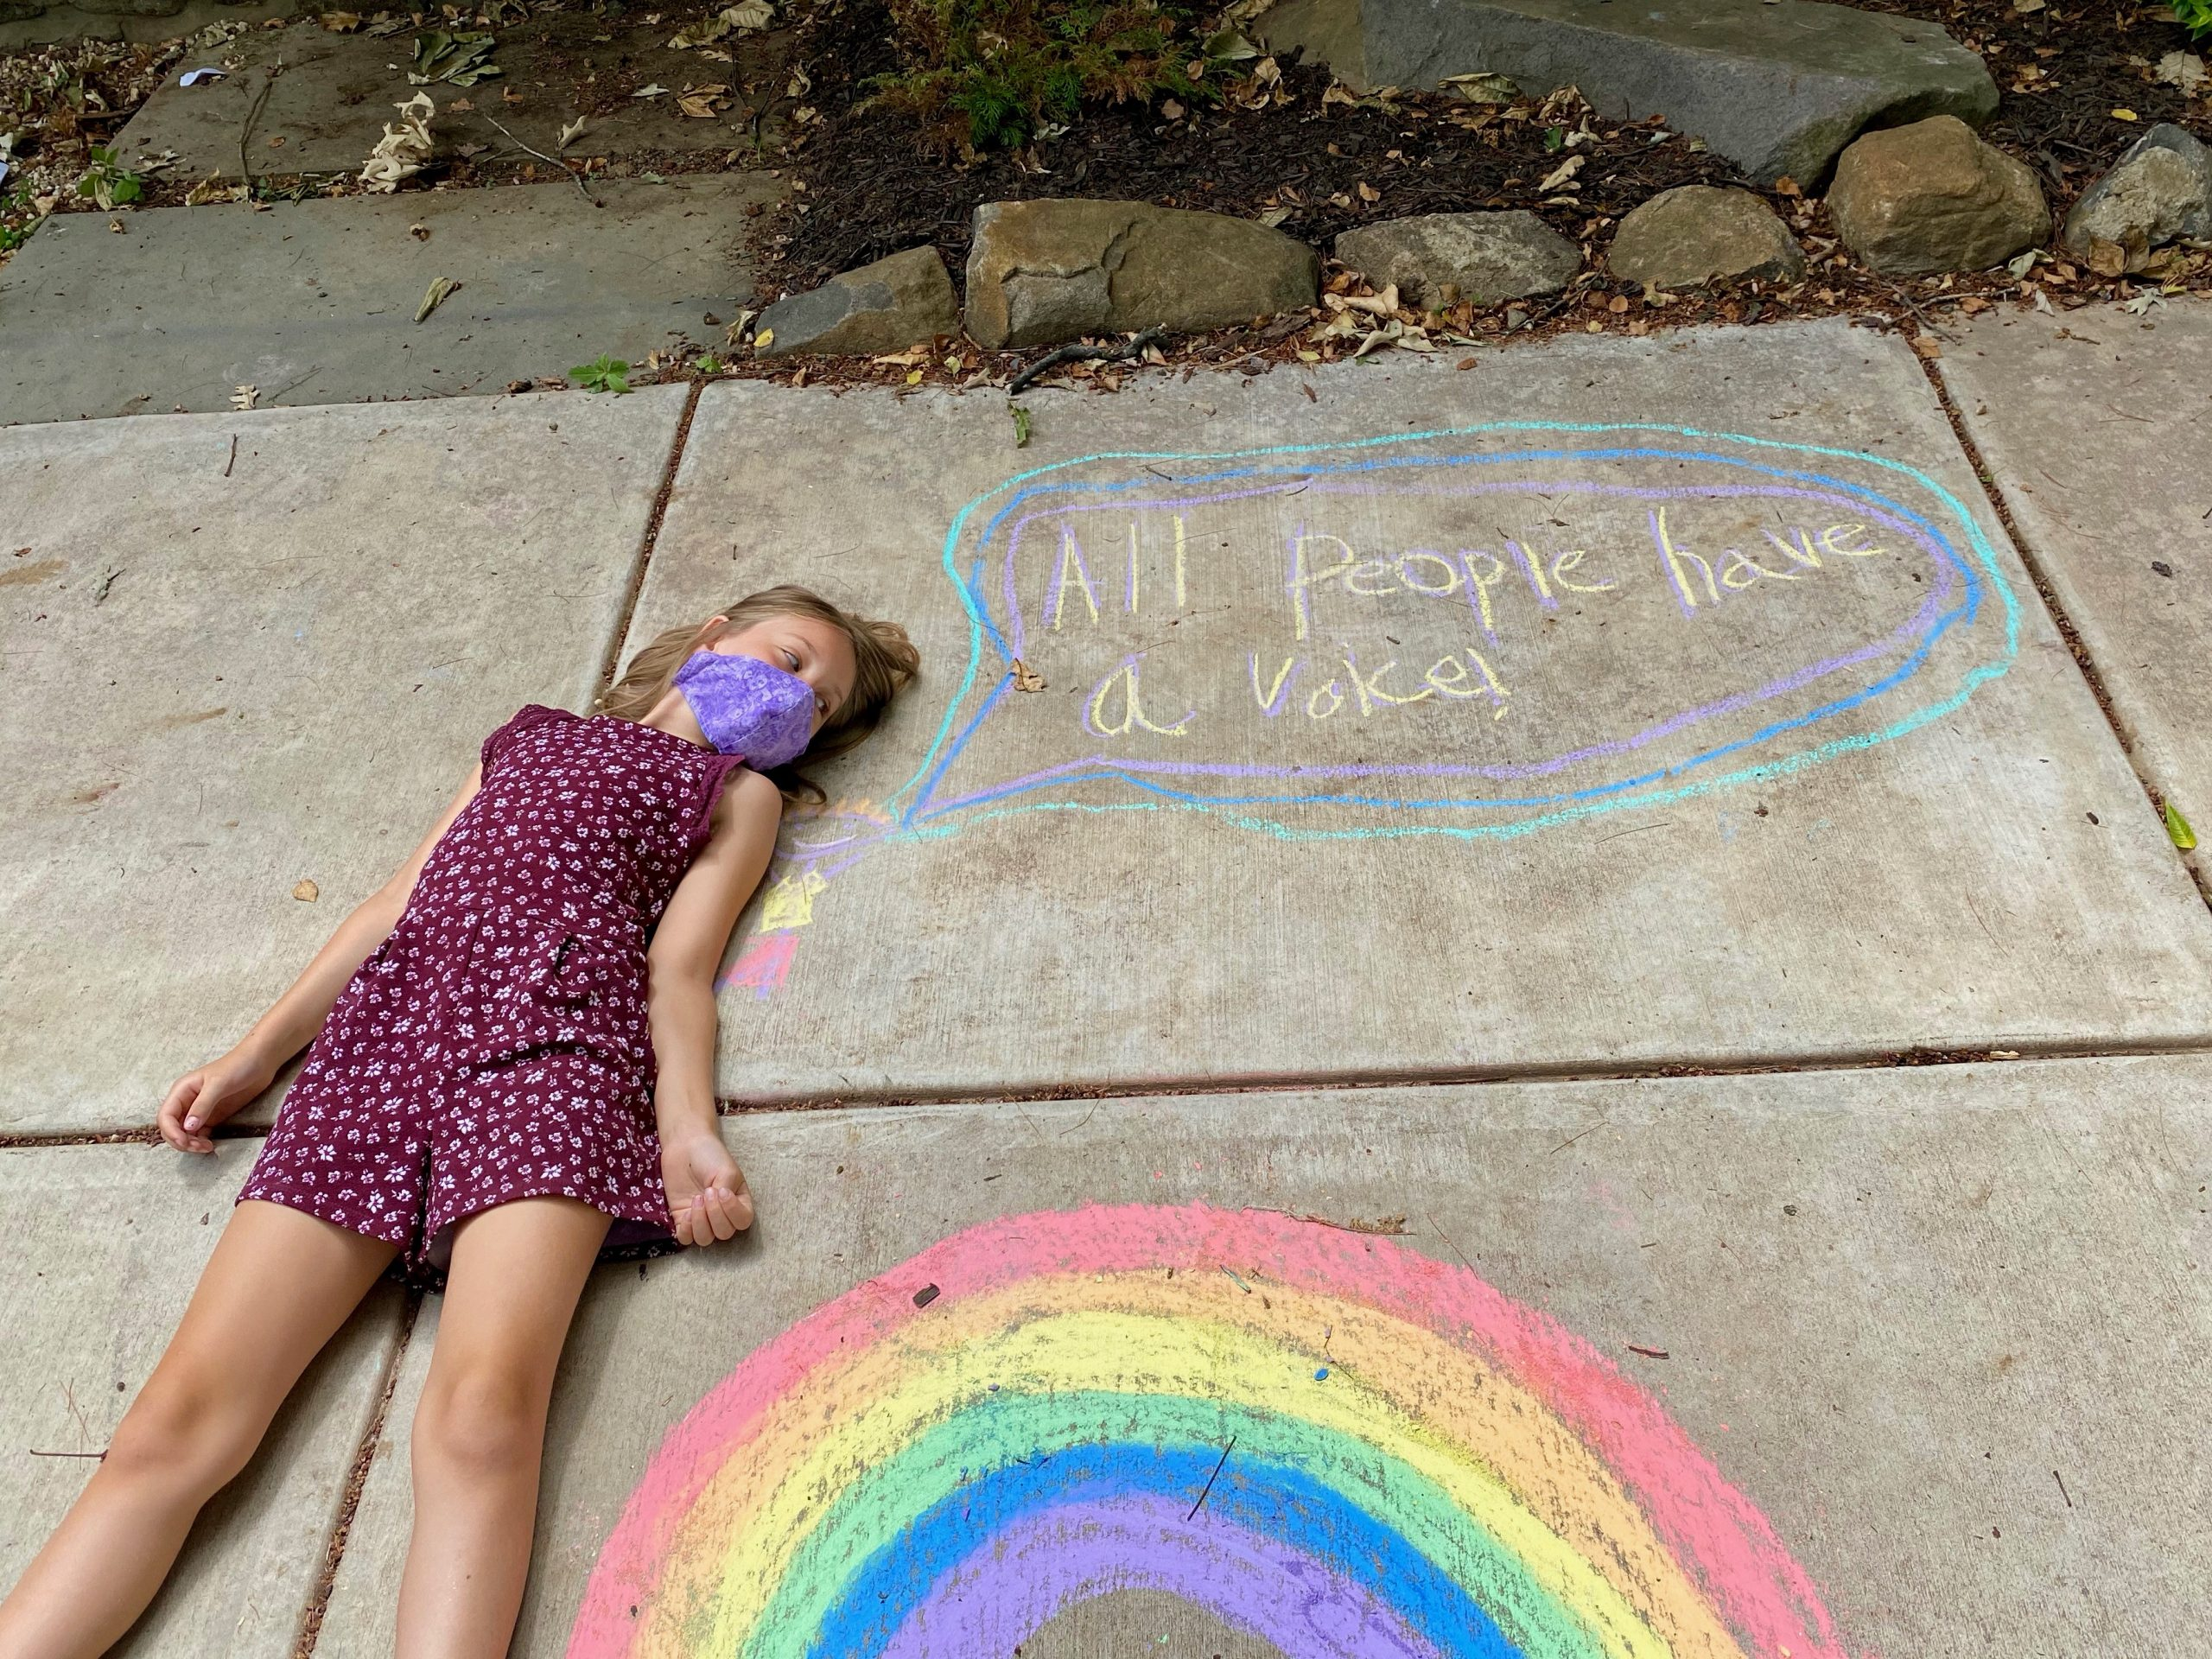 """Image of child lying on the ground next to speech bubble which says """"All People Have a Voice"""""""